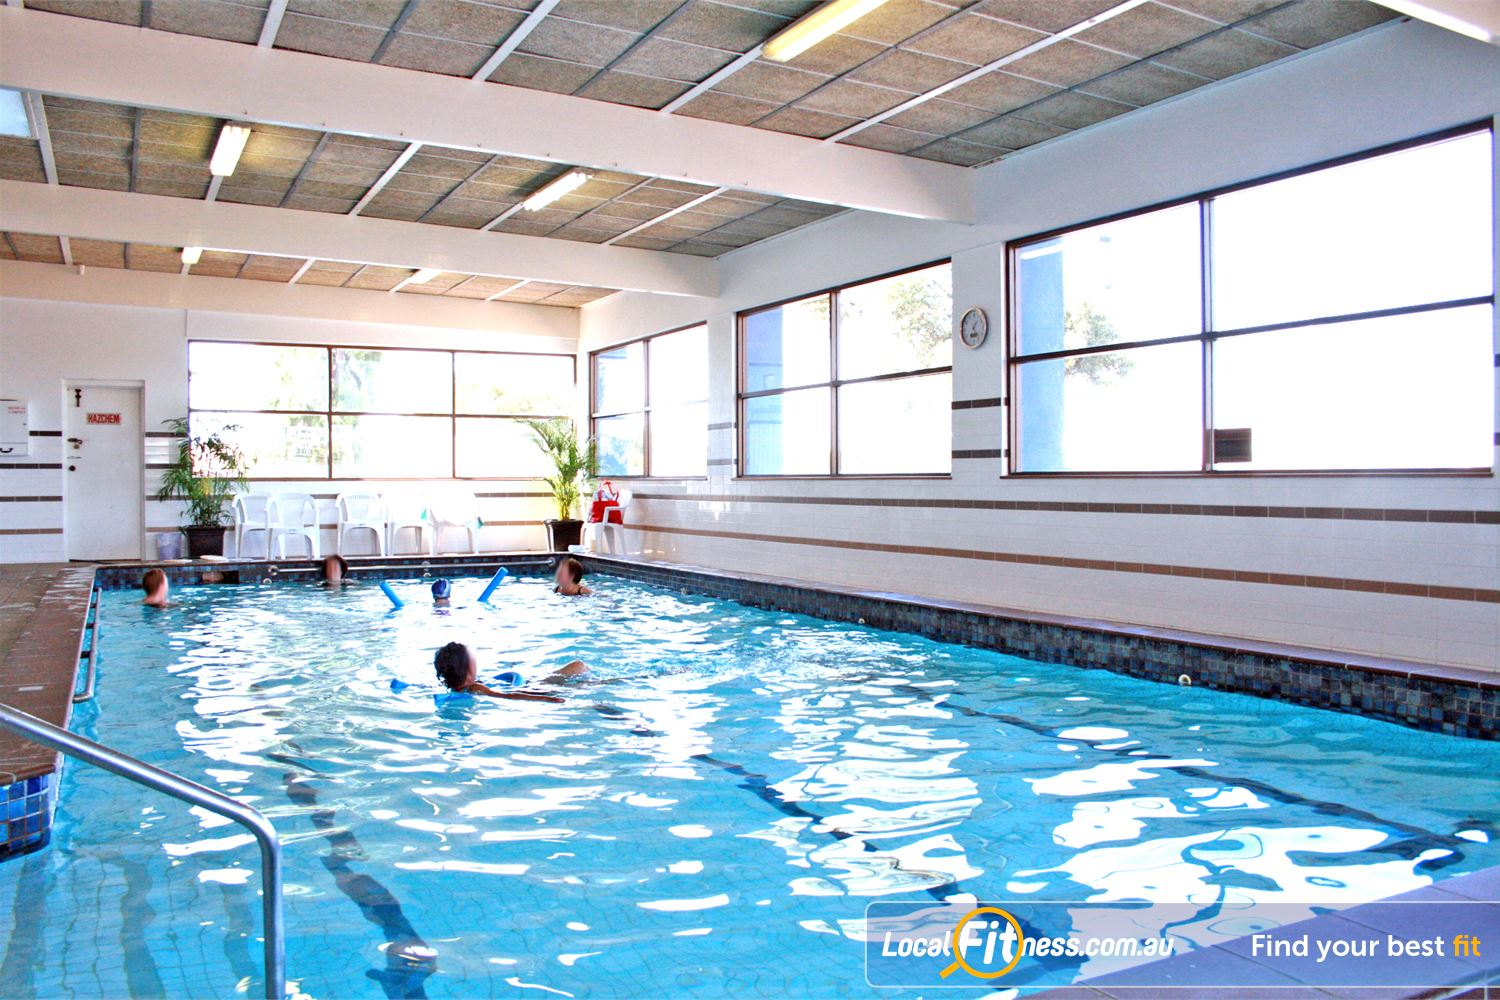 Goodlife Health Clubs Hoppers Crossing Our 15 metre Hoppers Crossing swimming pool.